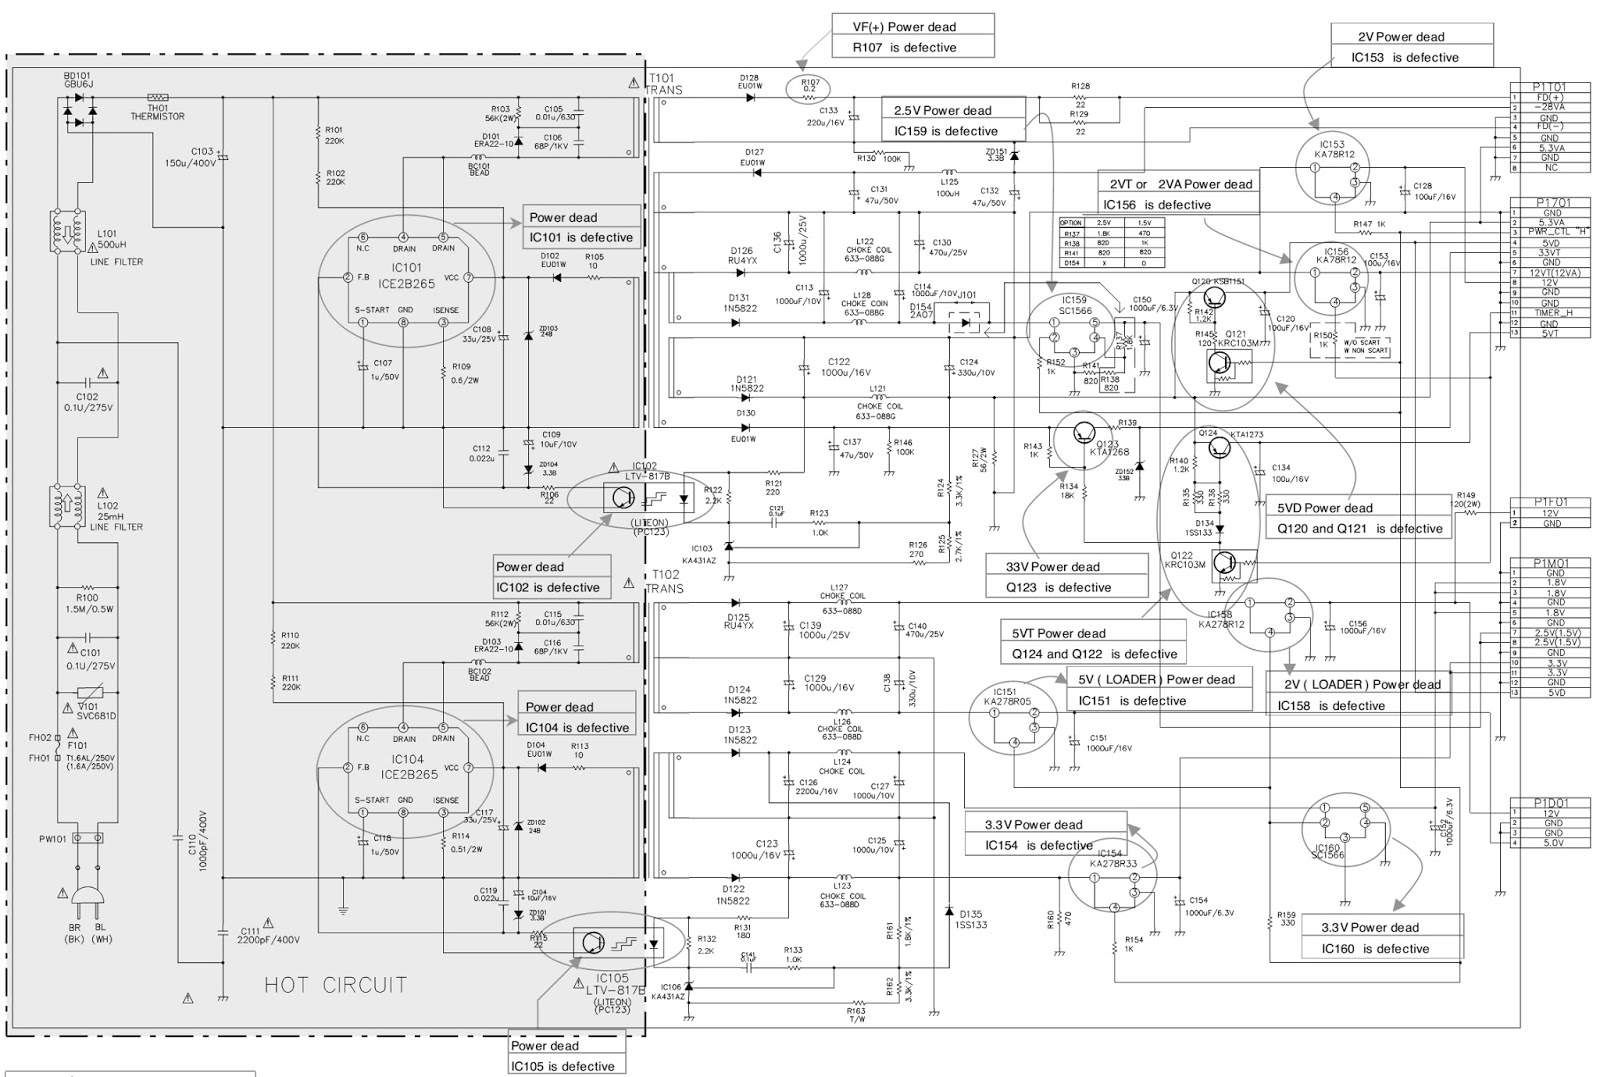 lg dr 4812w hdd dvd main power supply schematic. Black Bedroom Furniture Sets. Home Design Ideas